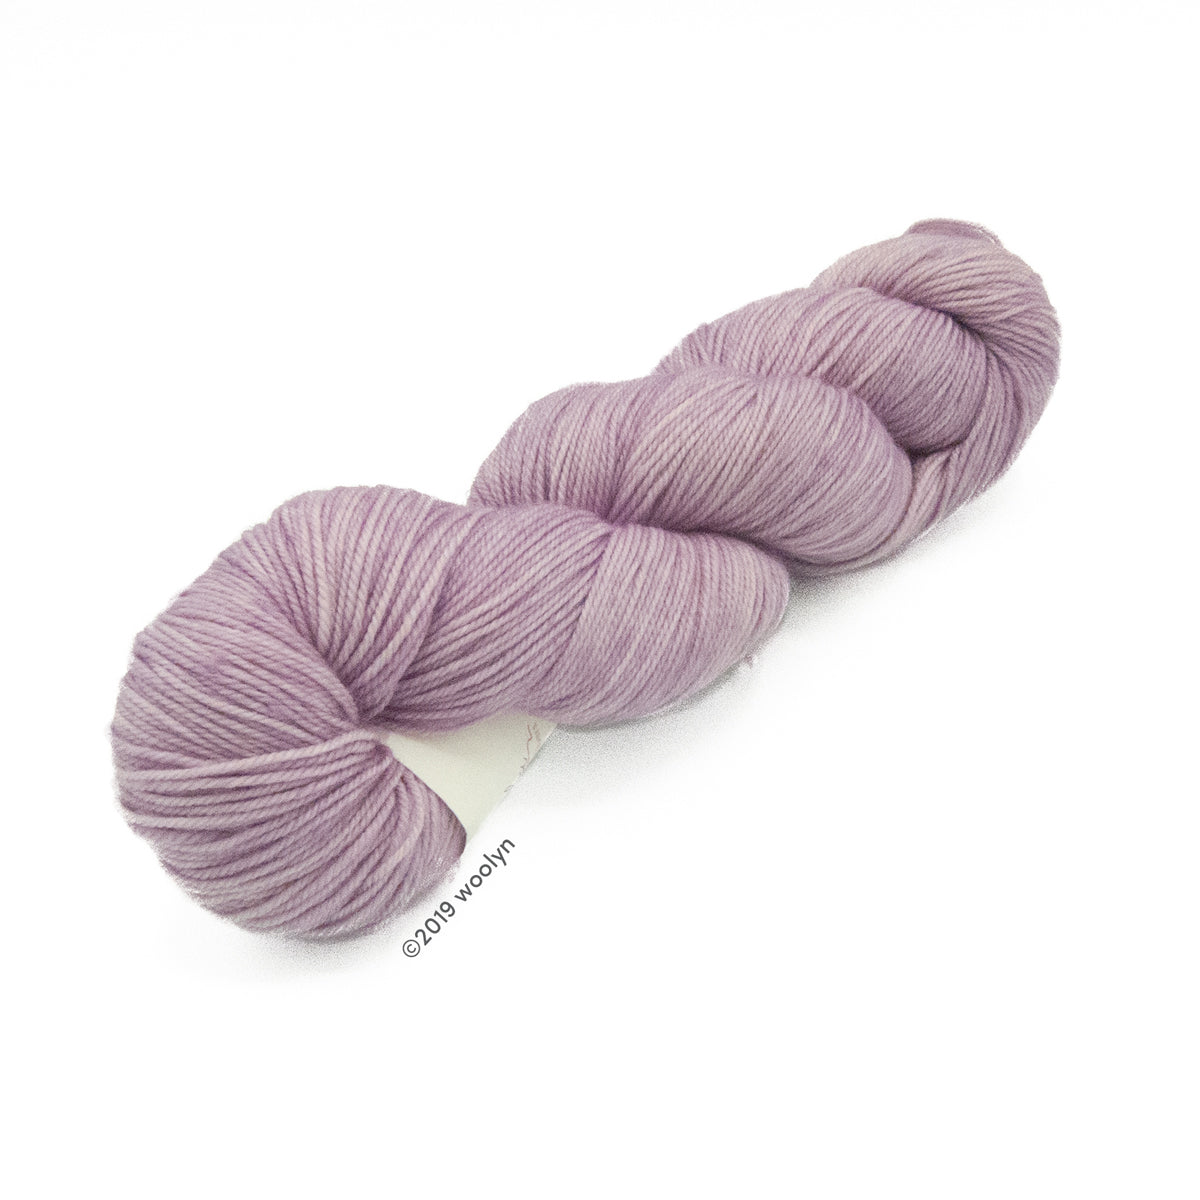 Hand dyed fingering weight yarn in pale lavender pink tonal shades twisted into a skein.